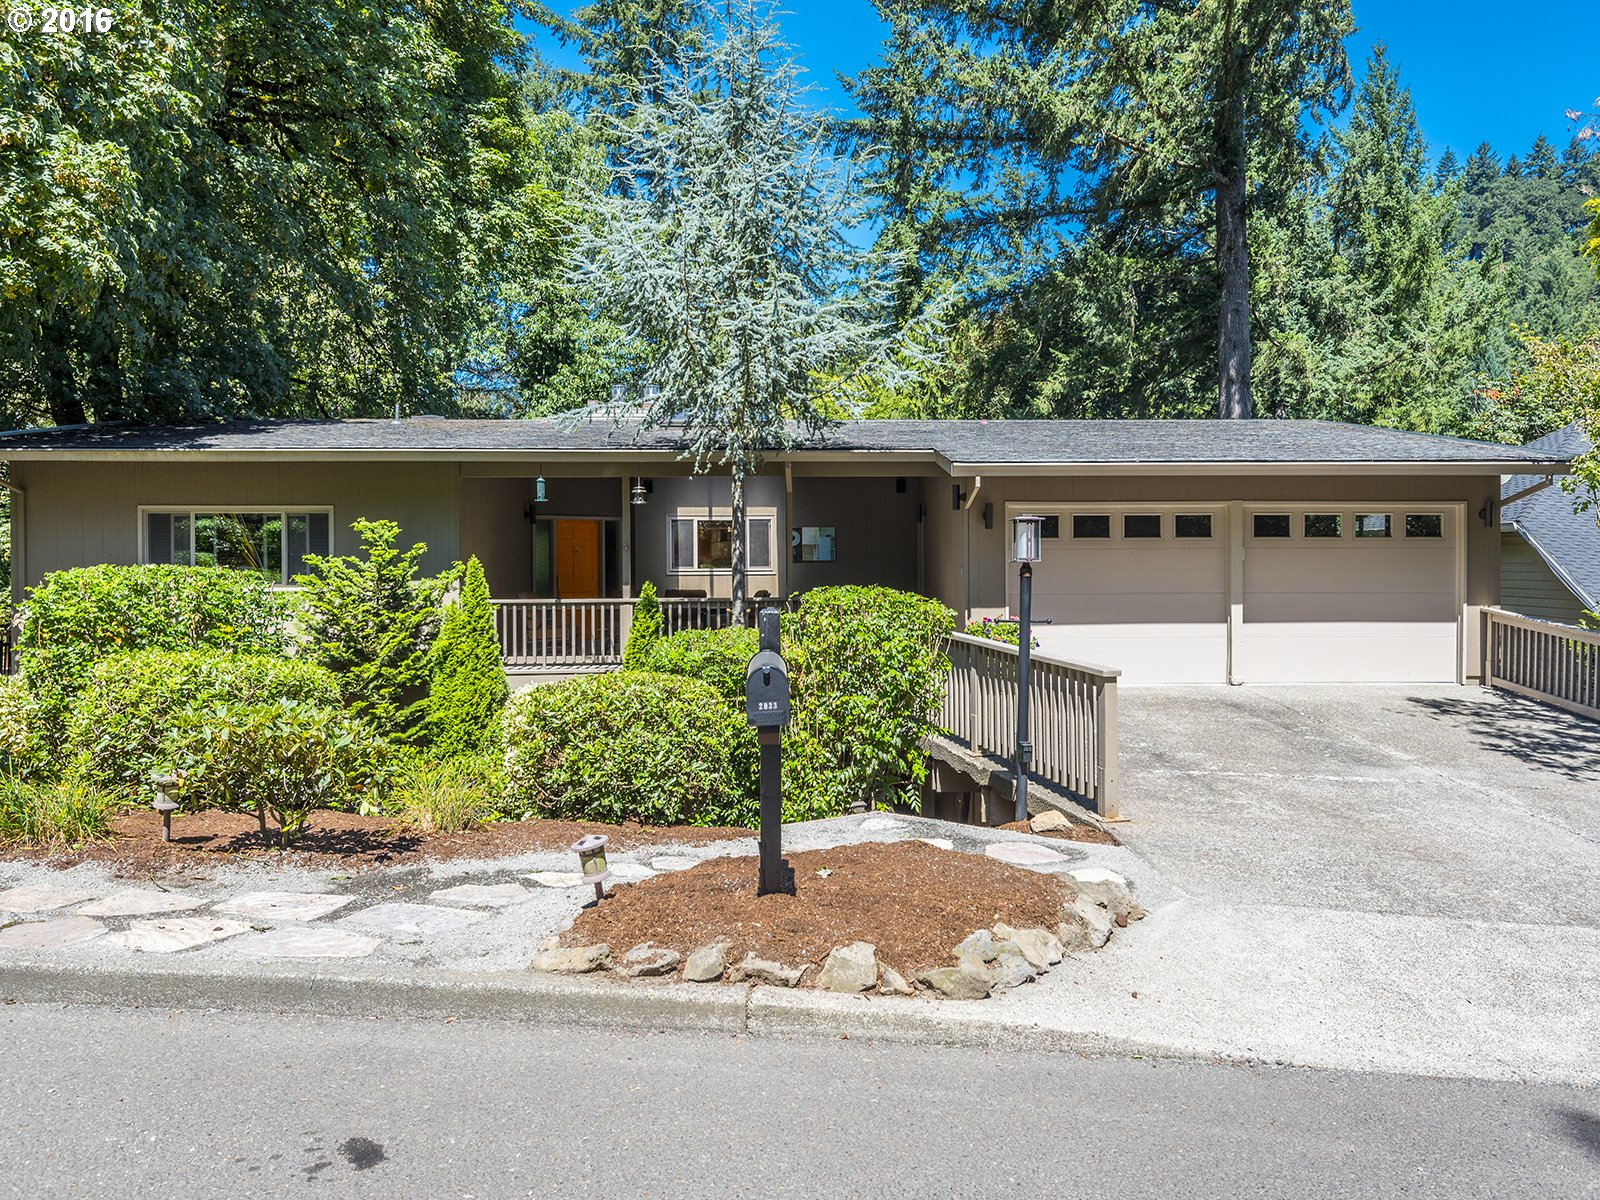 2033 RIDGEWOOD RD, Lake Oswego, OR 97034